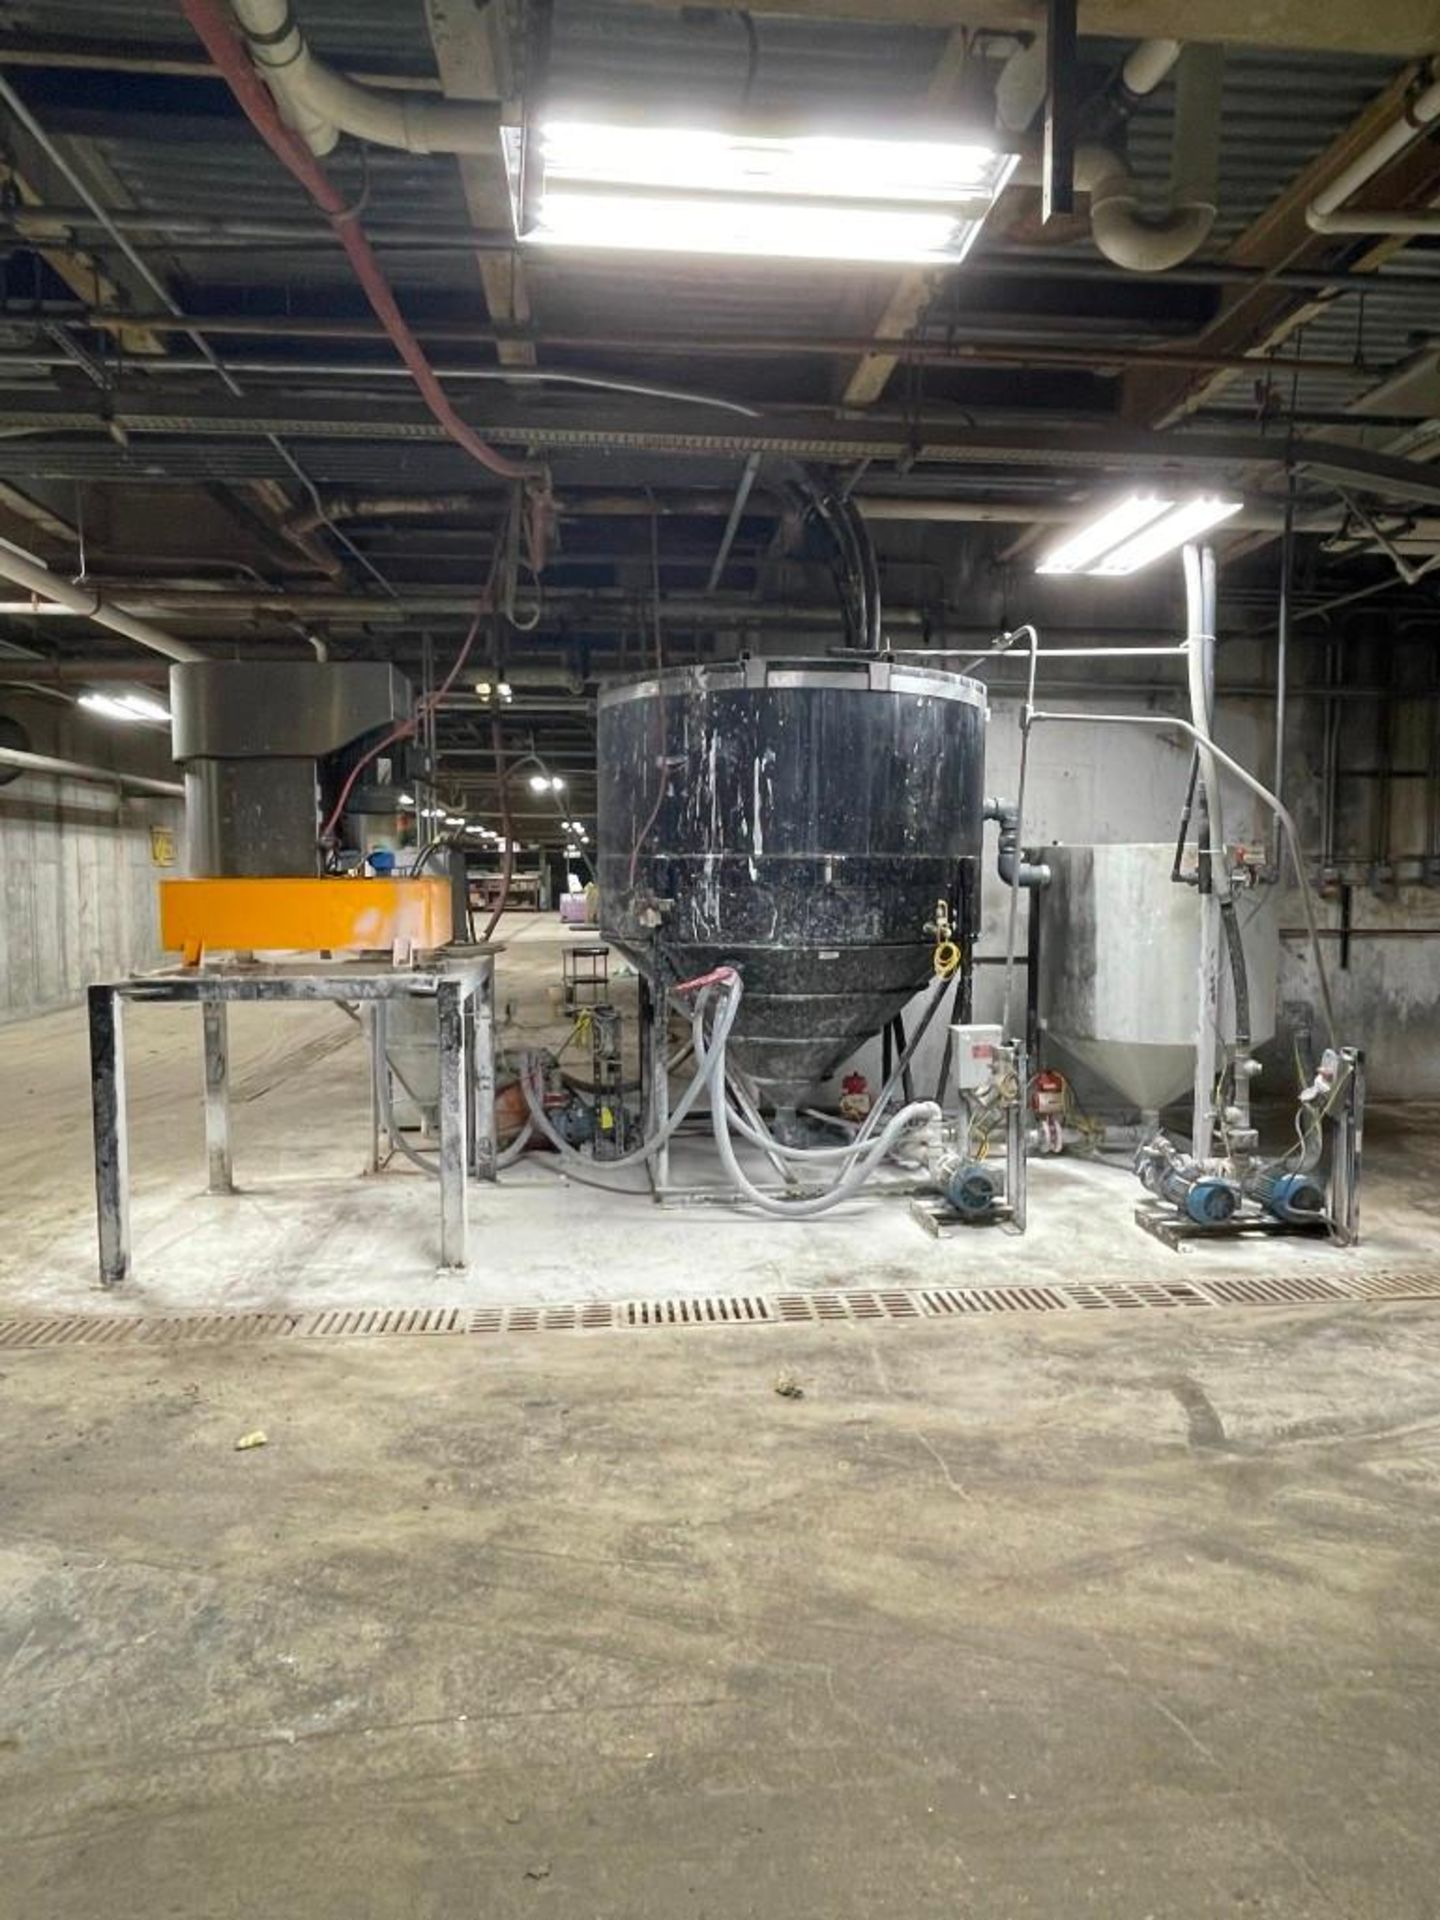 CentraSep Centrifugal Separation 3 Tank Filtration System - Image 4 of 9